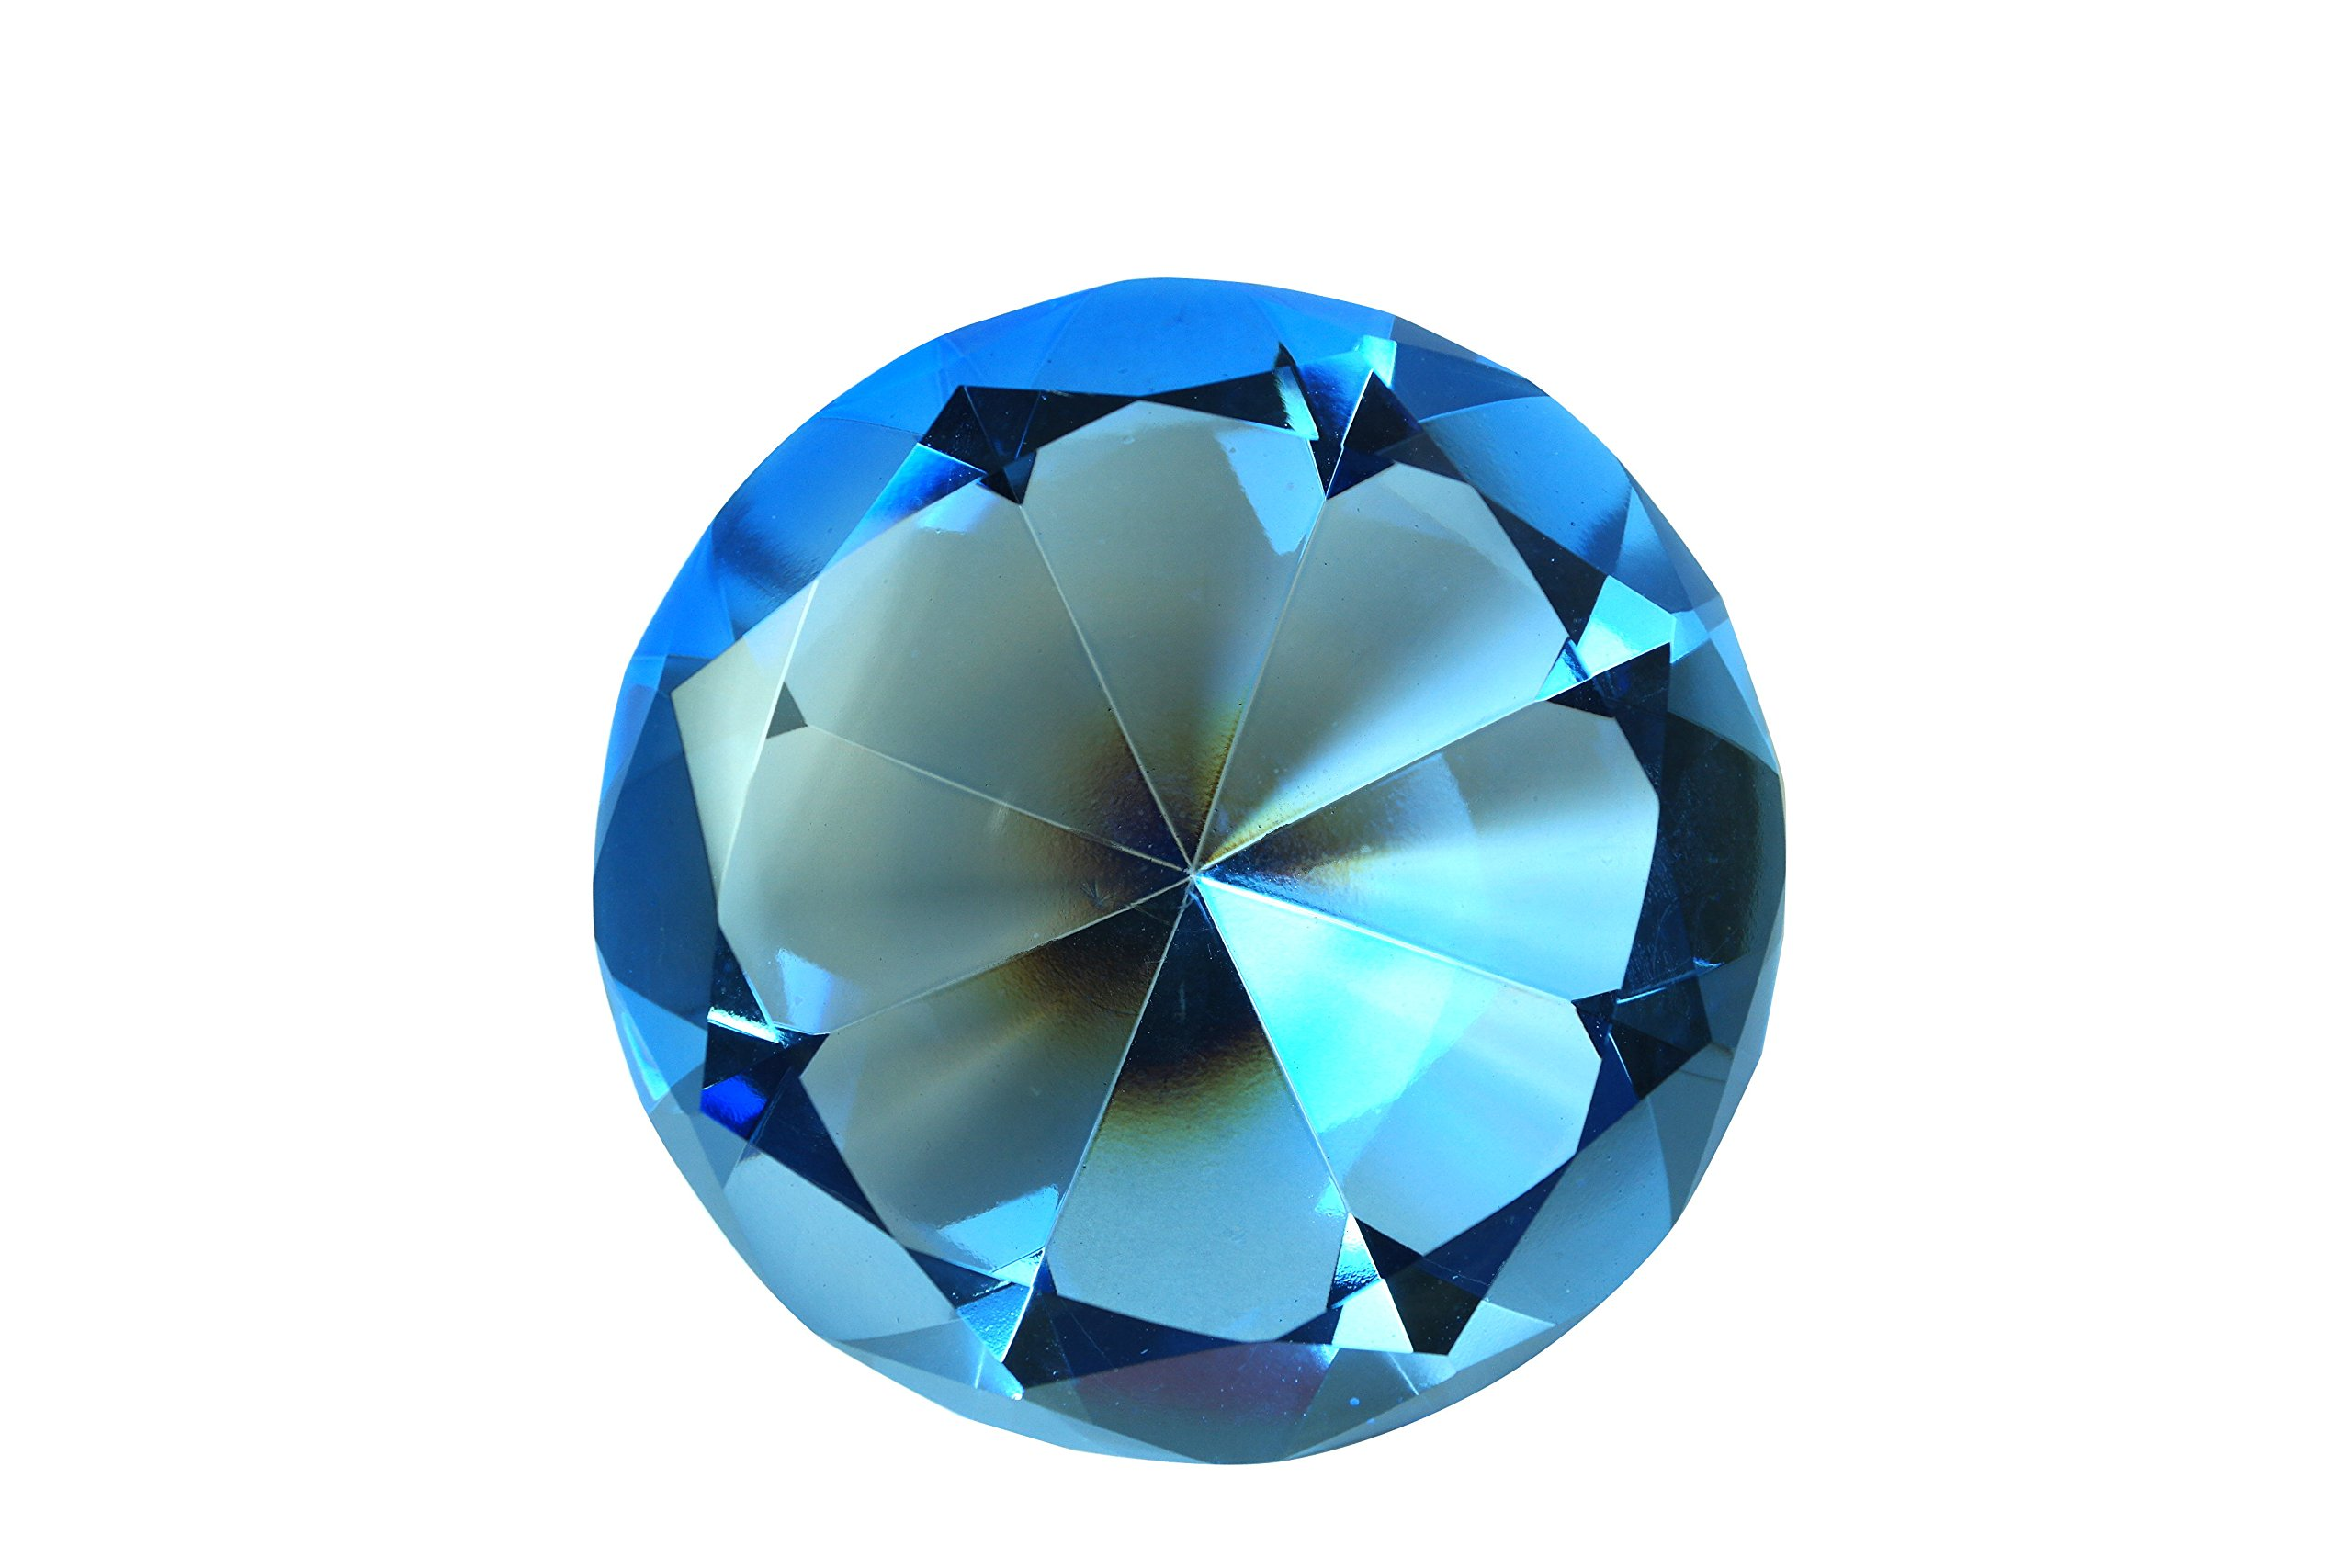 100 mm Sapphire Blue Diamond Shaped Crystal Jewel Paperweight by Tripact - 04